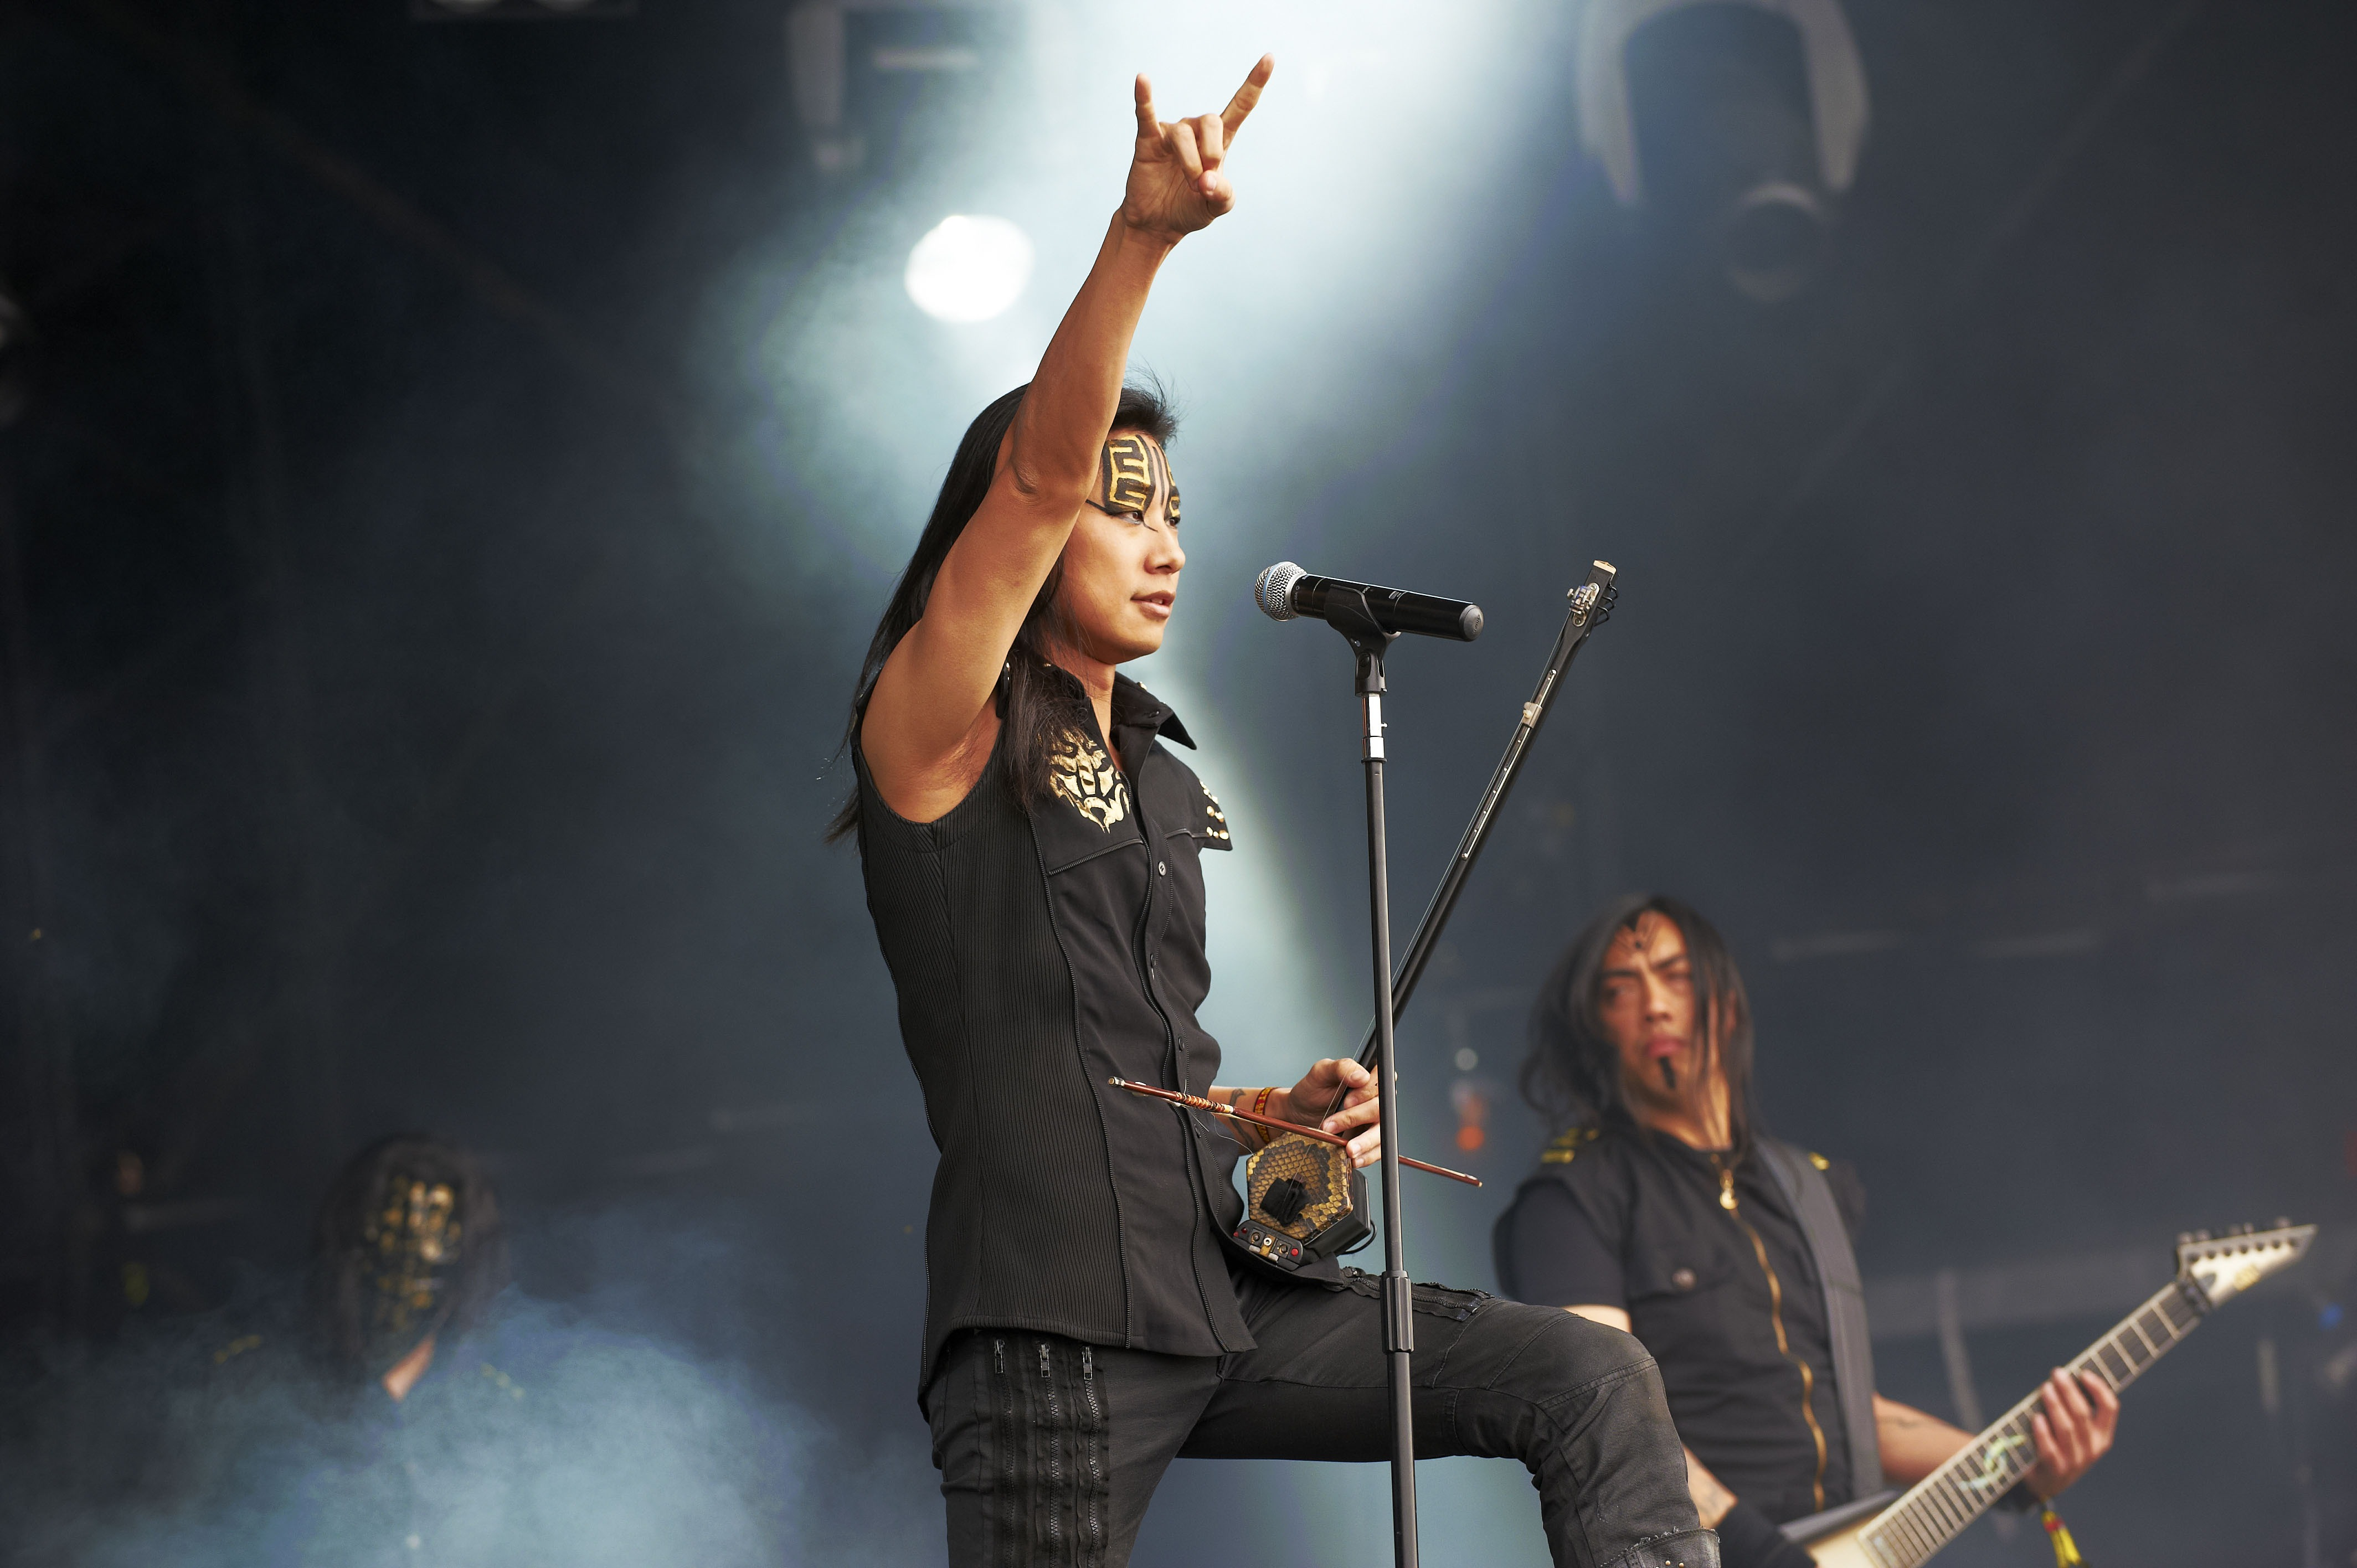 Freddy Lim of Chthonic performs on stage during day 2 of Bloodstock Open Air 2012 at Catton Hall on August 11, 2012 in Derby, England